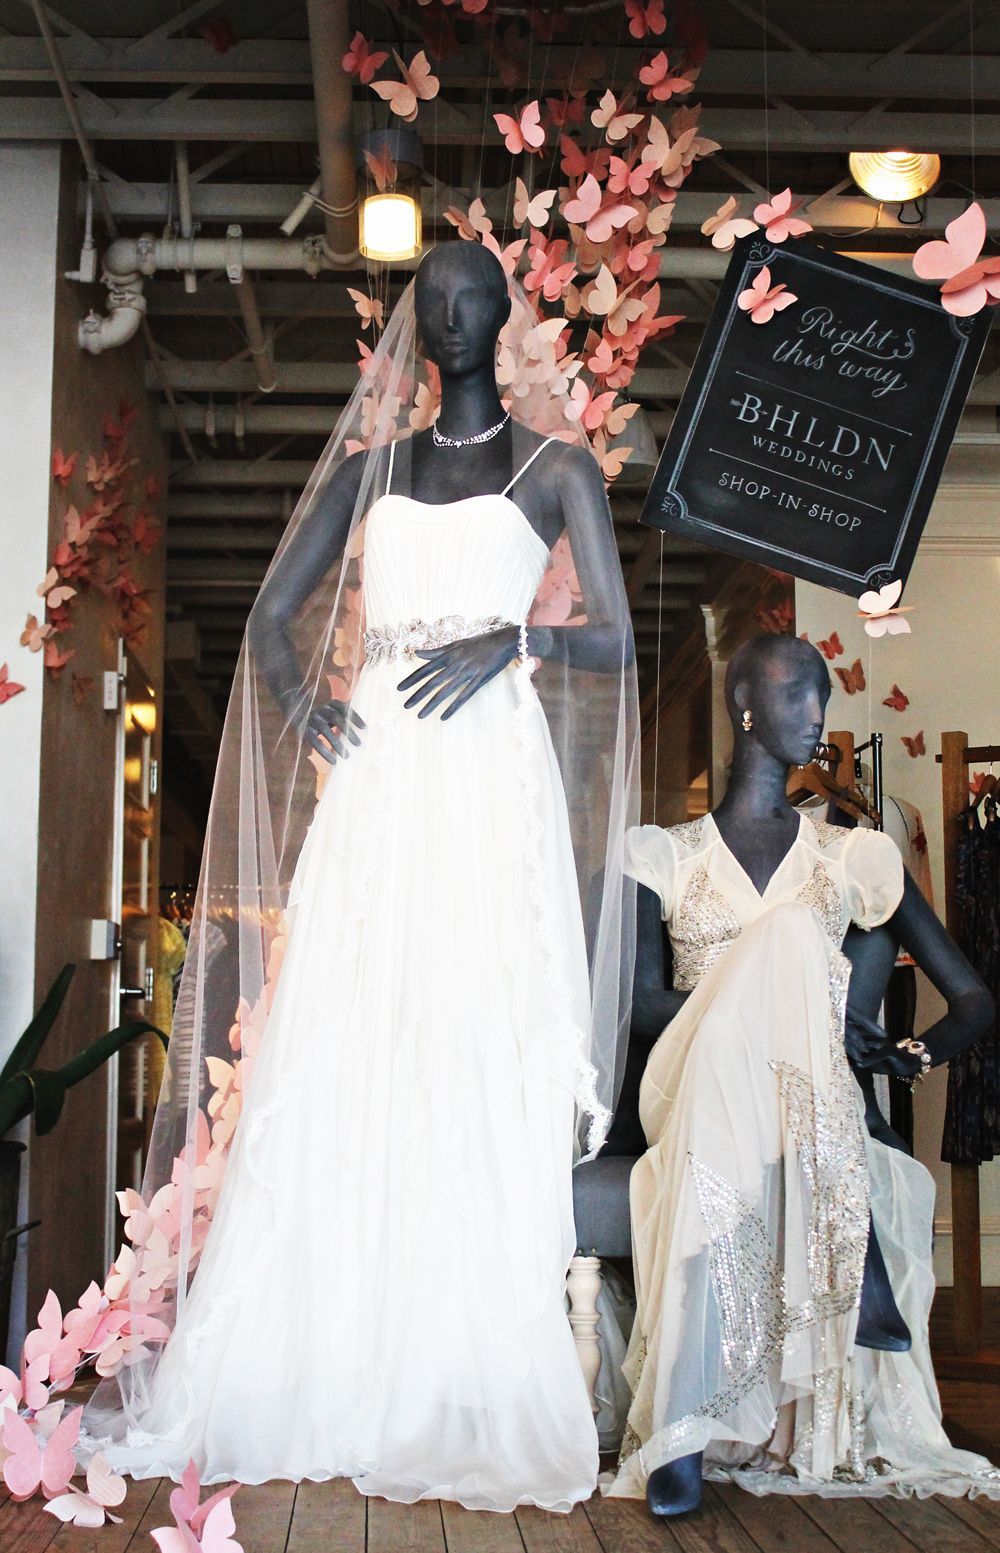 NESTLED IN THE HEART OF BEVERLY HILLS, amidst chic boutiques and eateries, our third and newest bridal shop is perched on the mezzanine level of our sister brand, Anthropologie's Beverly Drive store. #bridalshops